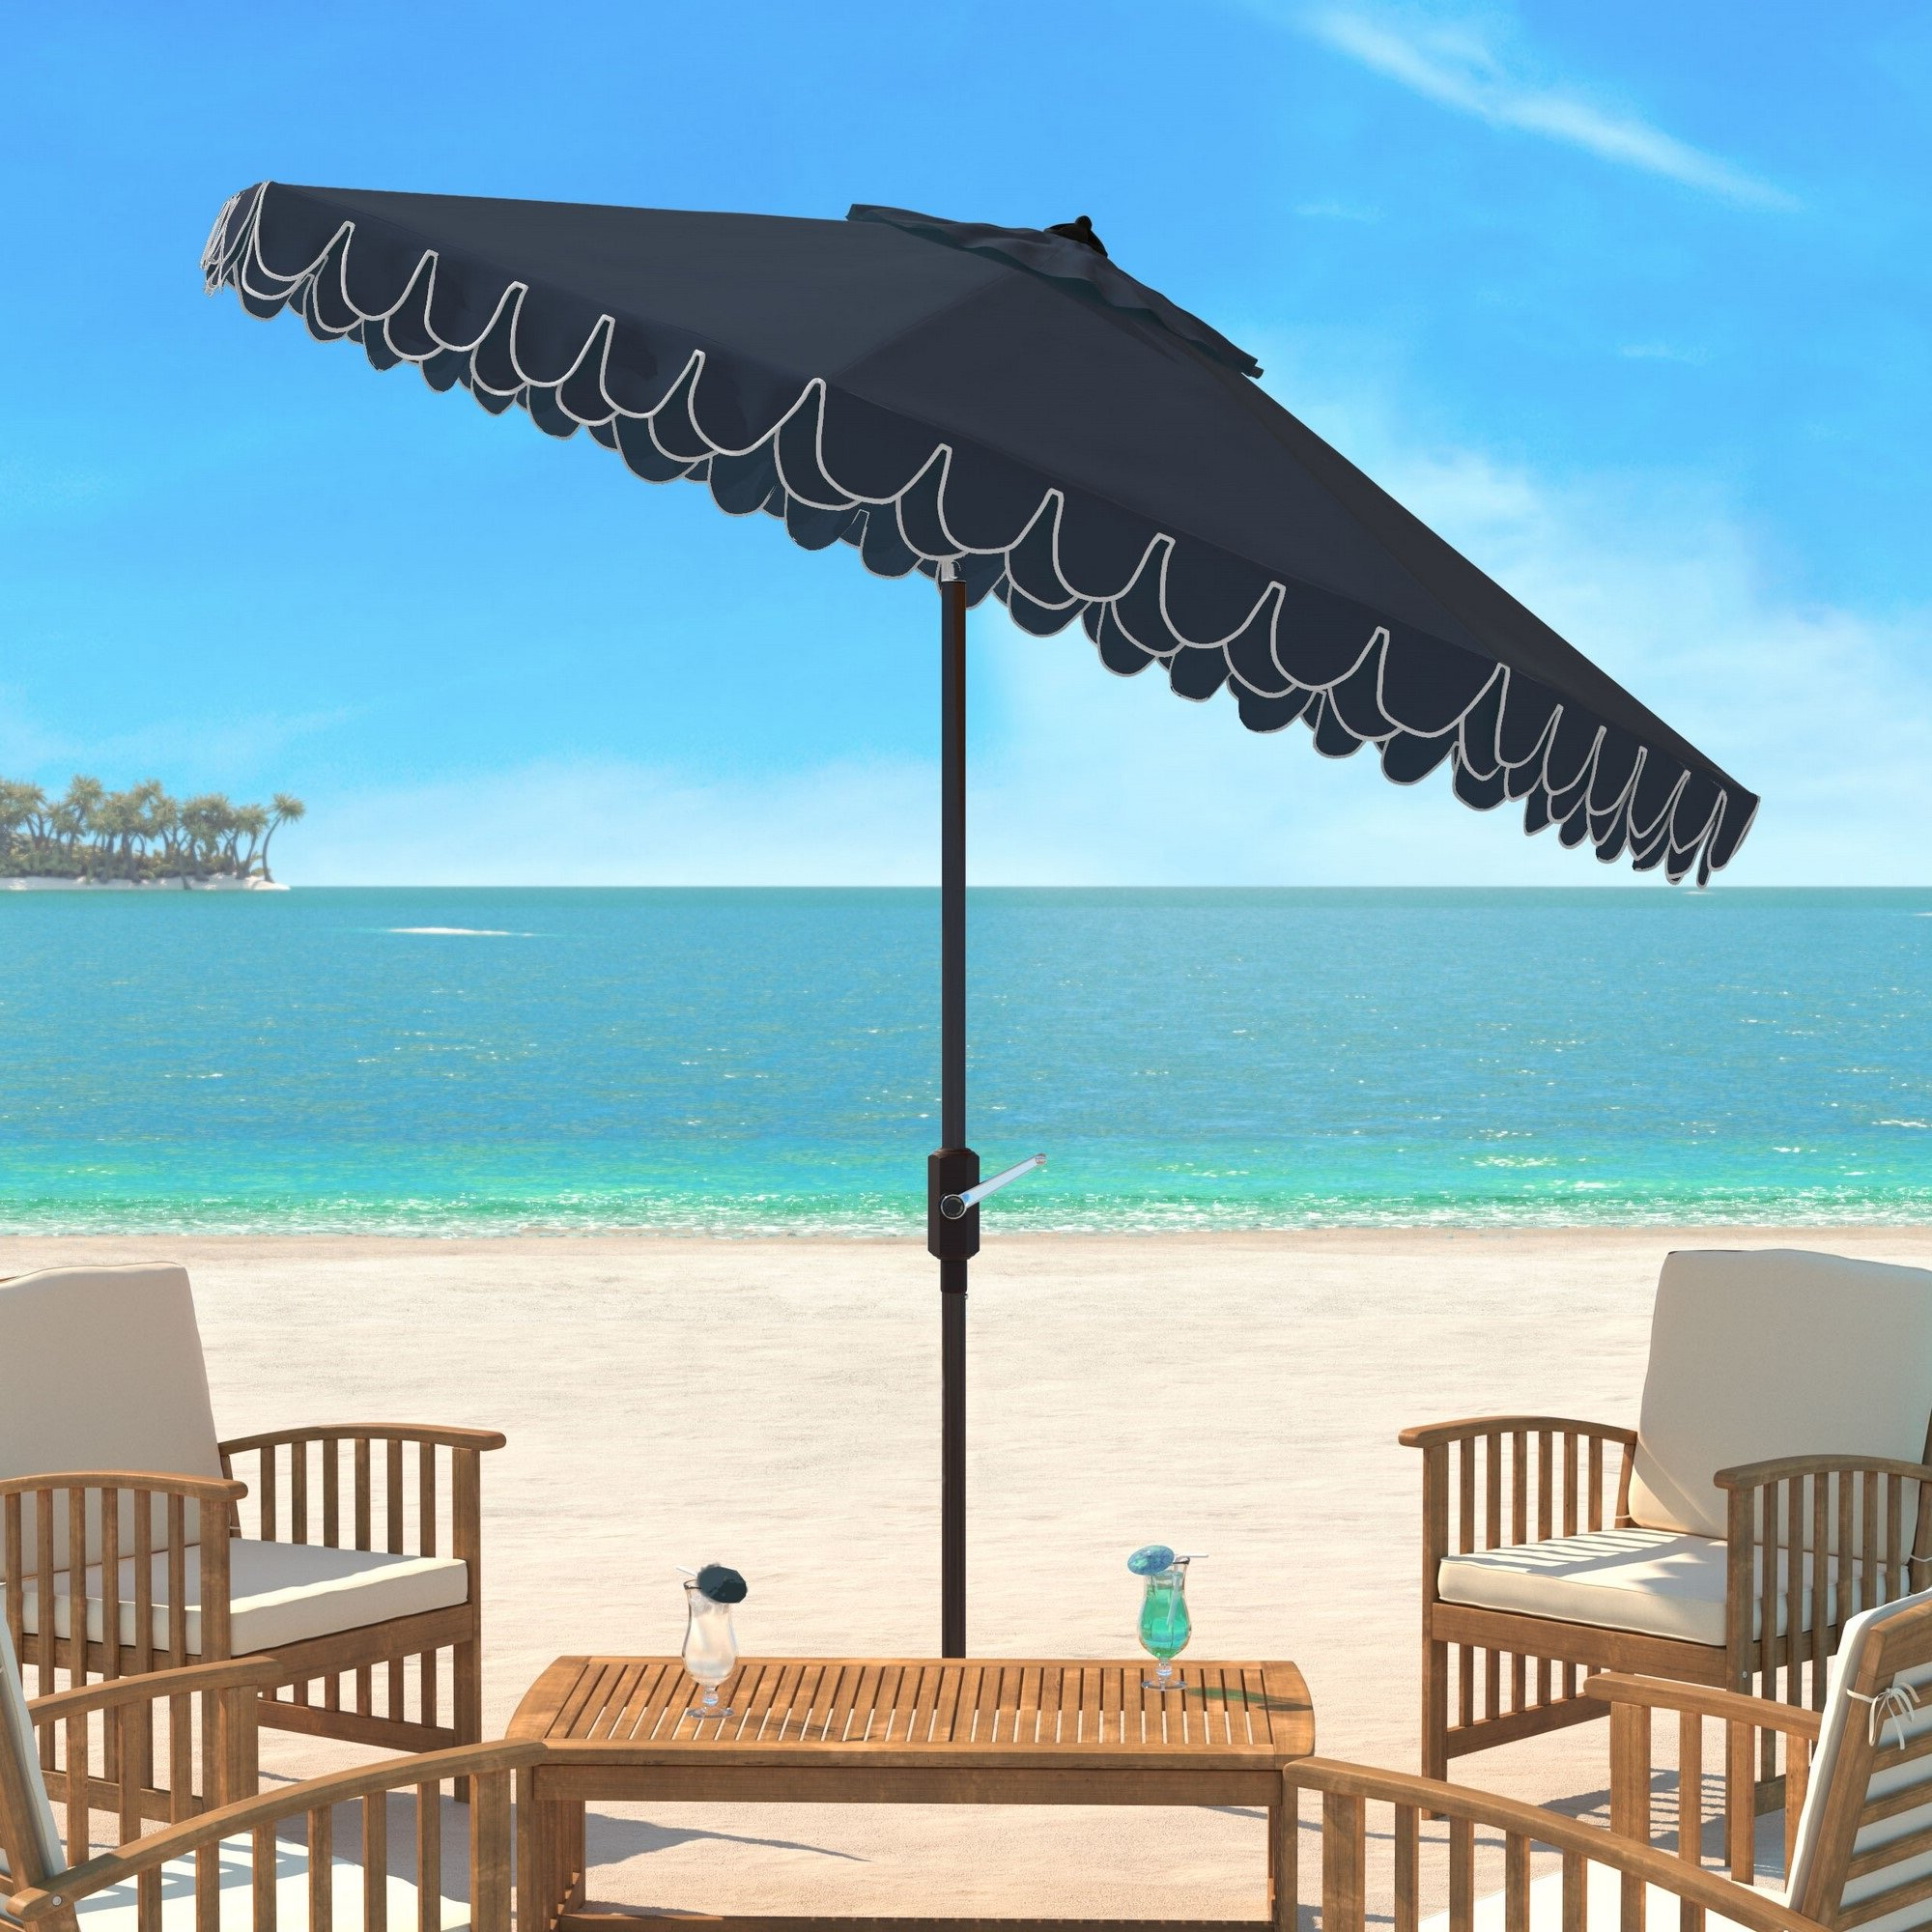 Artrip 9' Market Umbrella Regarding Well Known Hookton Crank Market Umbrellas (View 1 of 20)